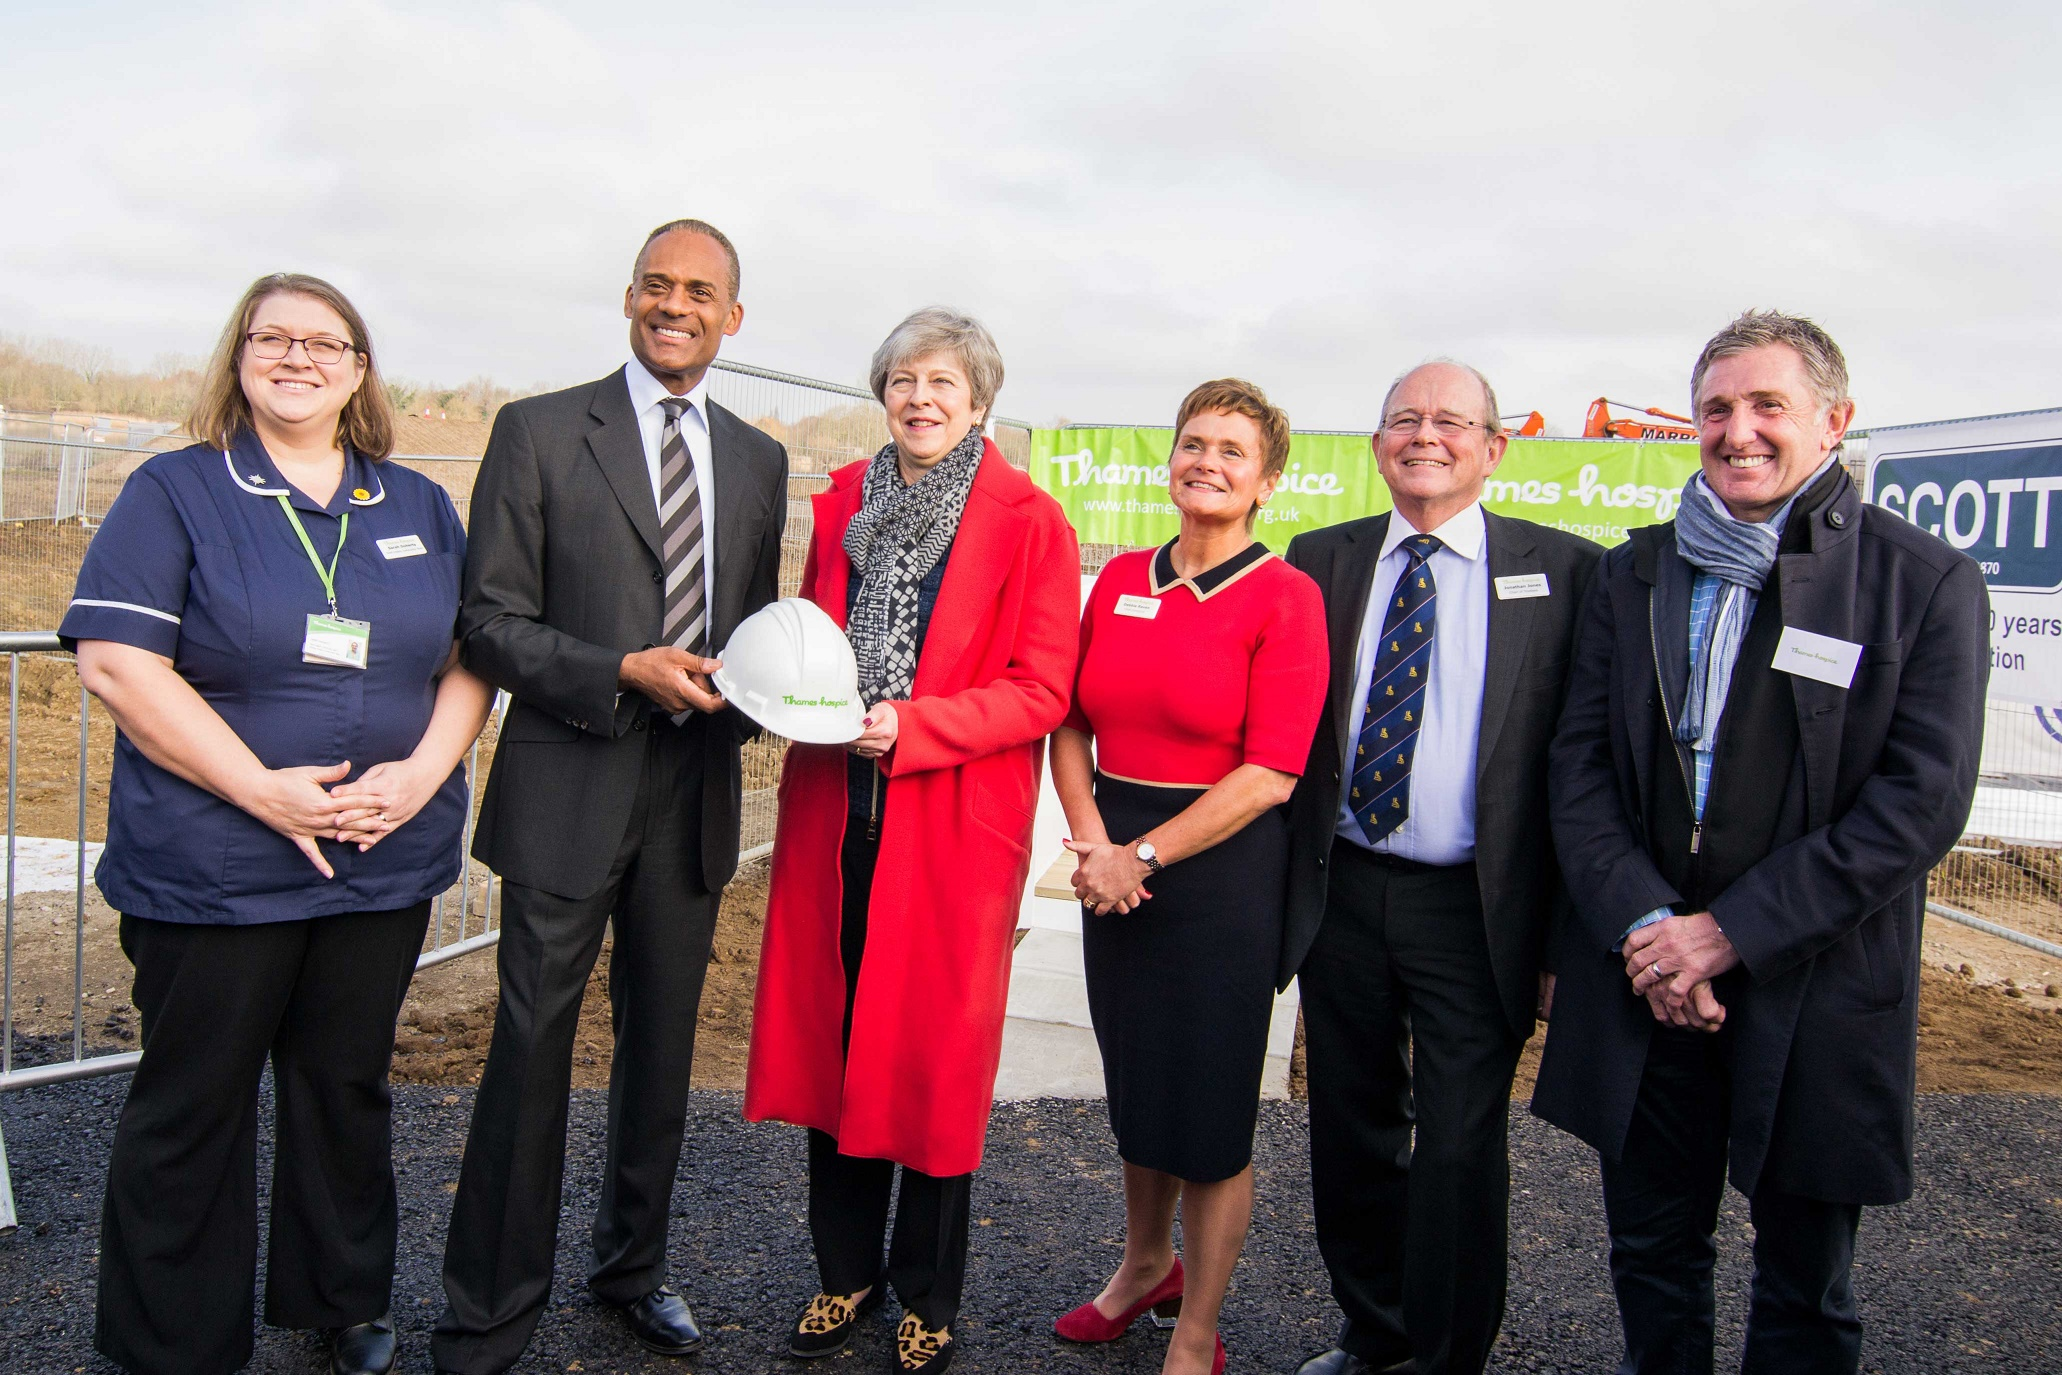 Prime Minister Theresa May attends ceremony for new hospice site